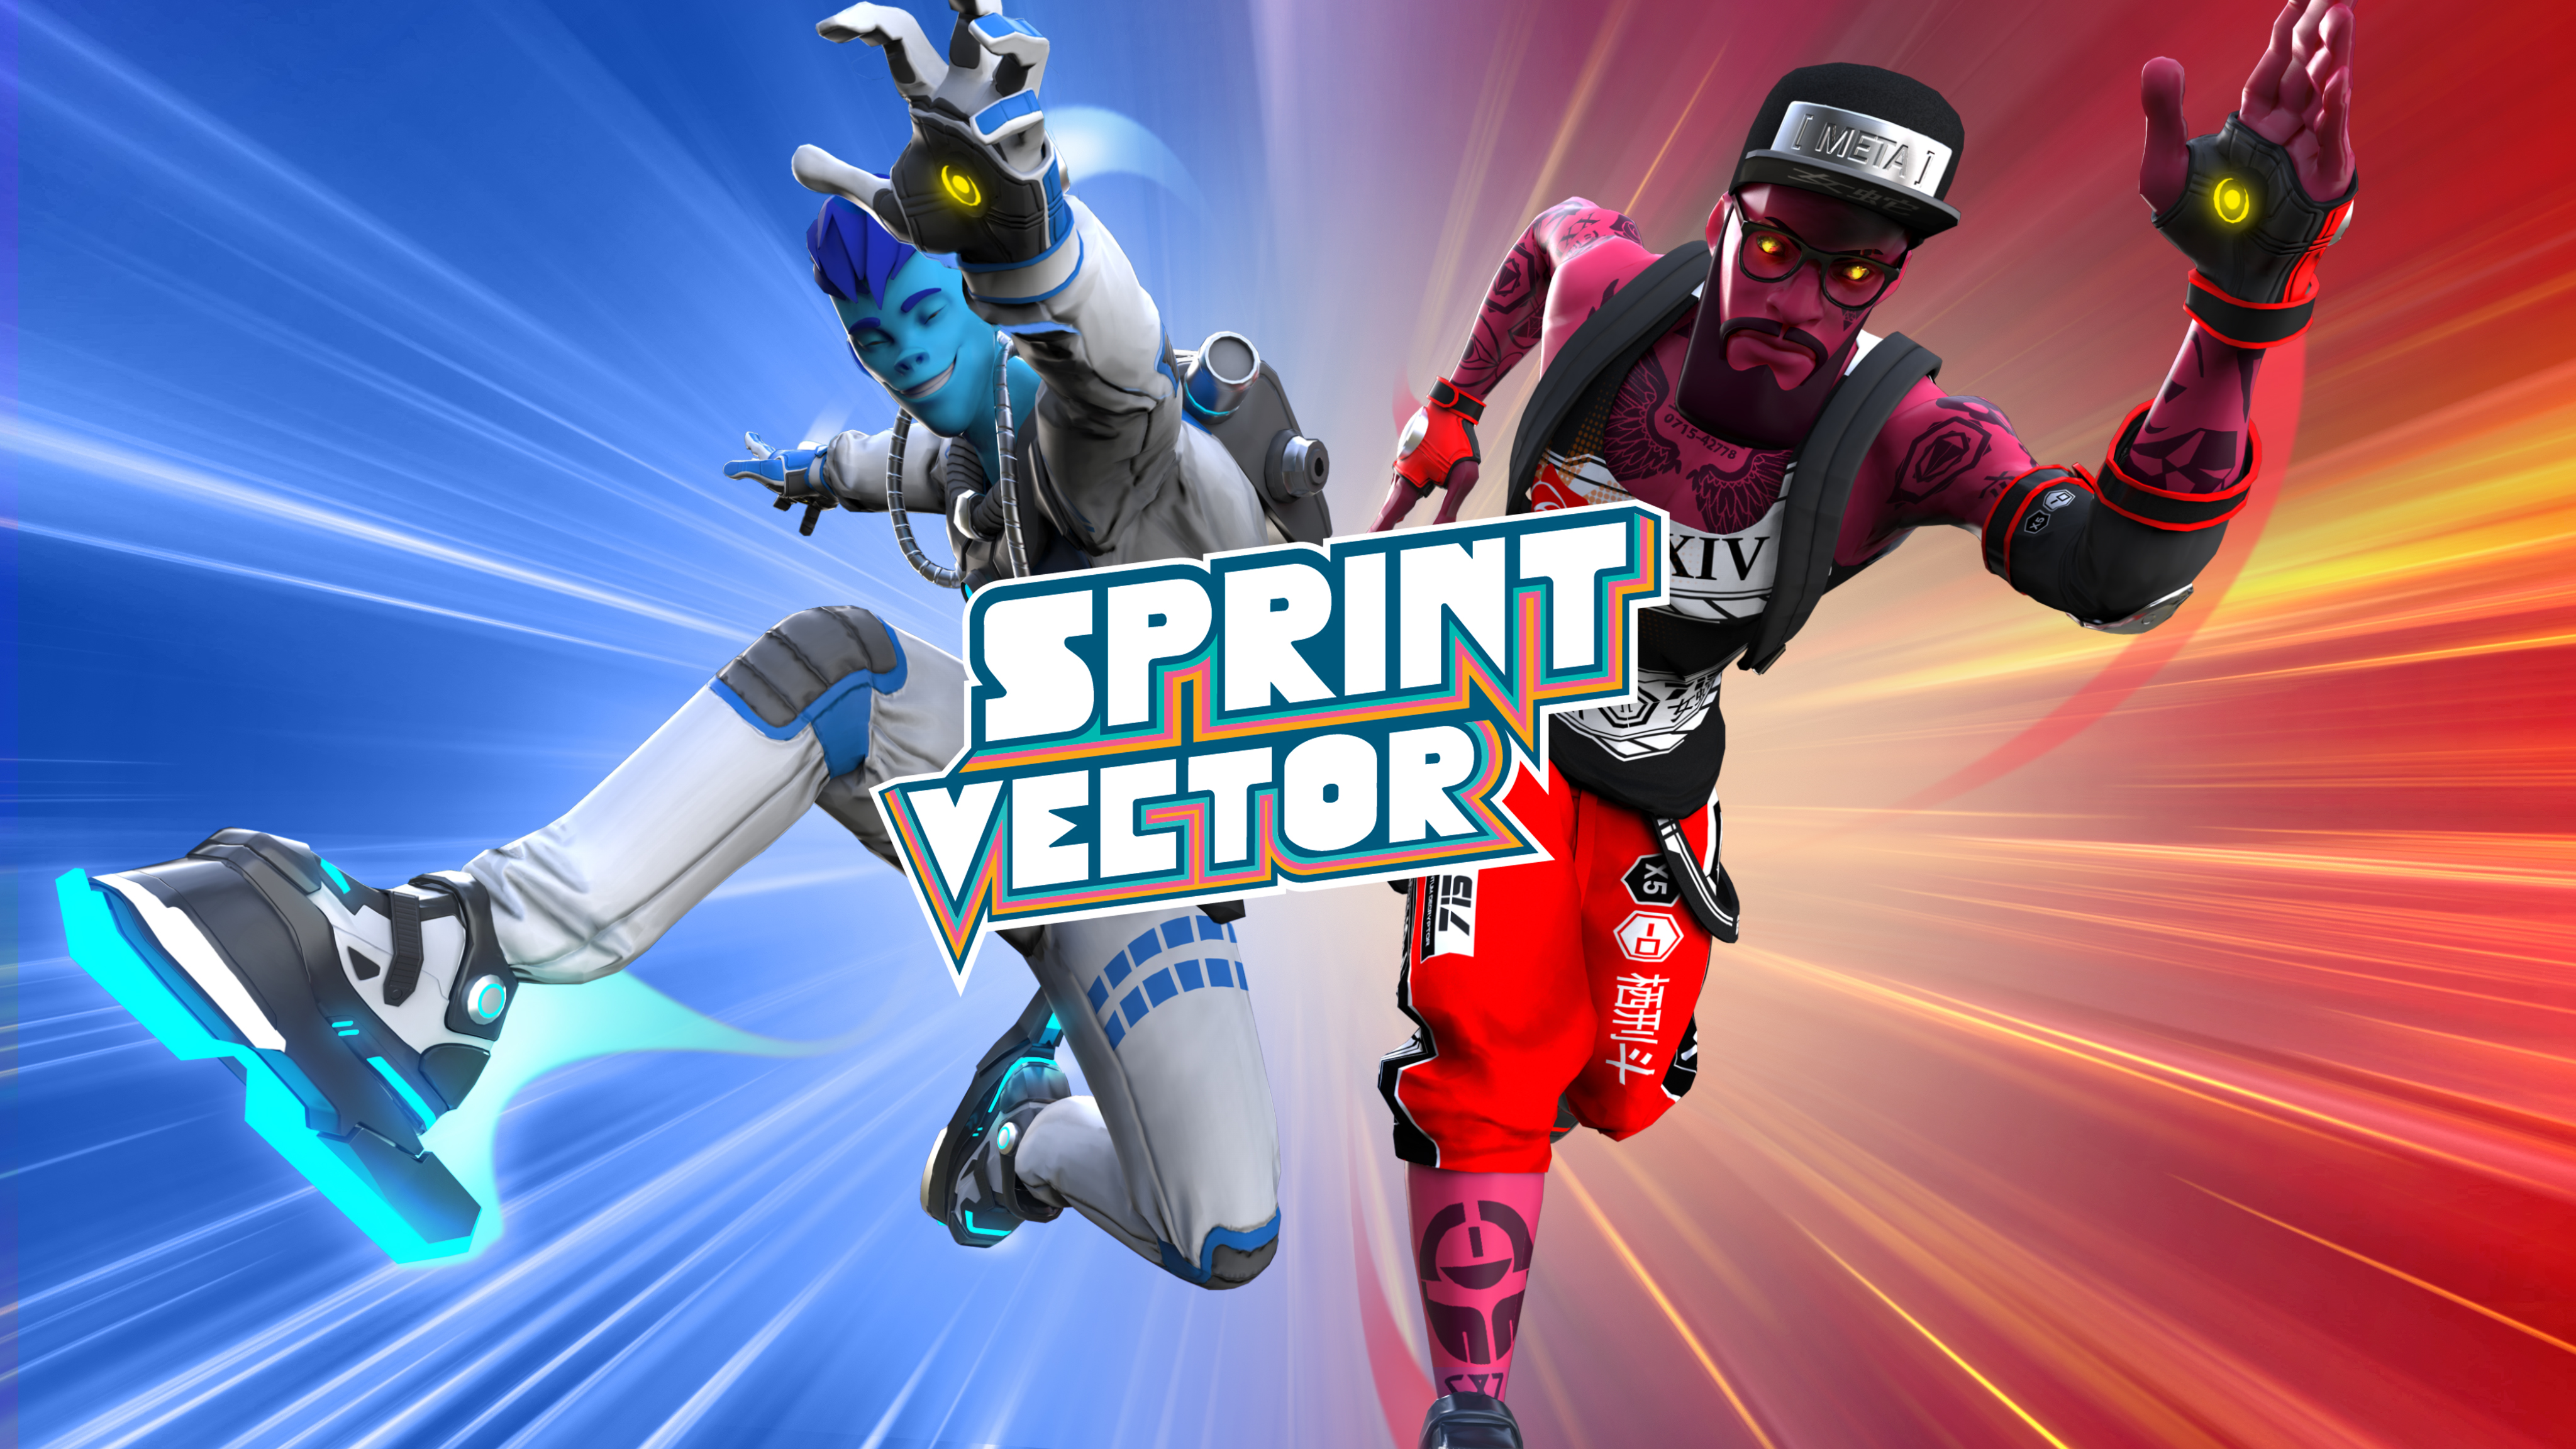 Sprint Vector is the Best Workout You'll Get at E3